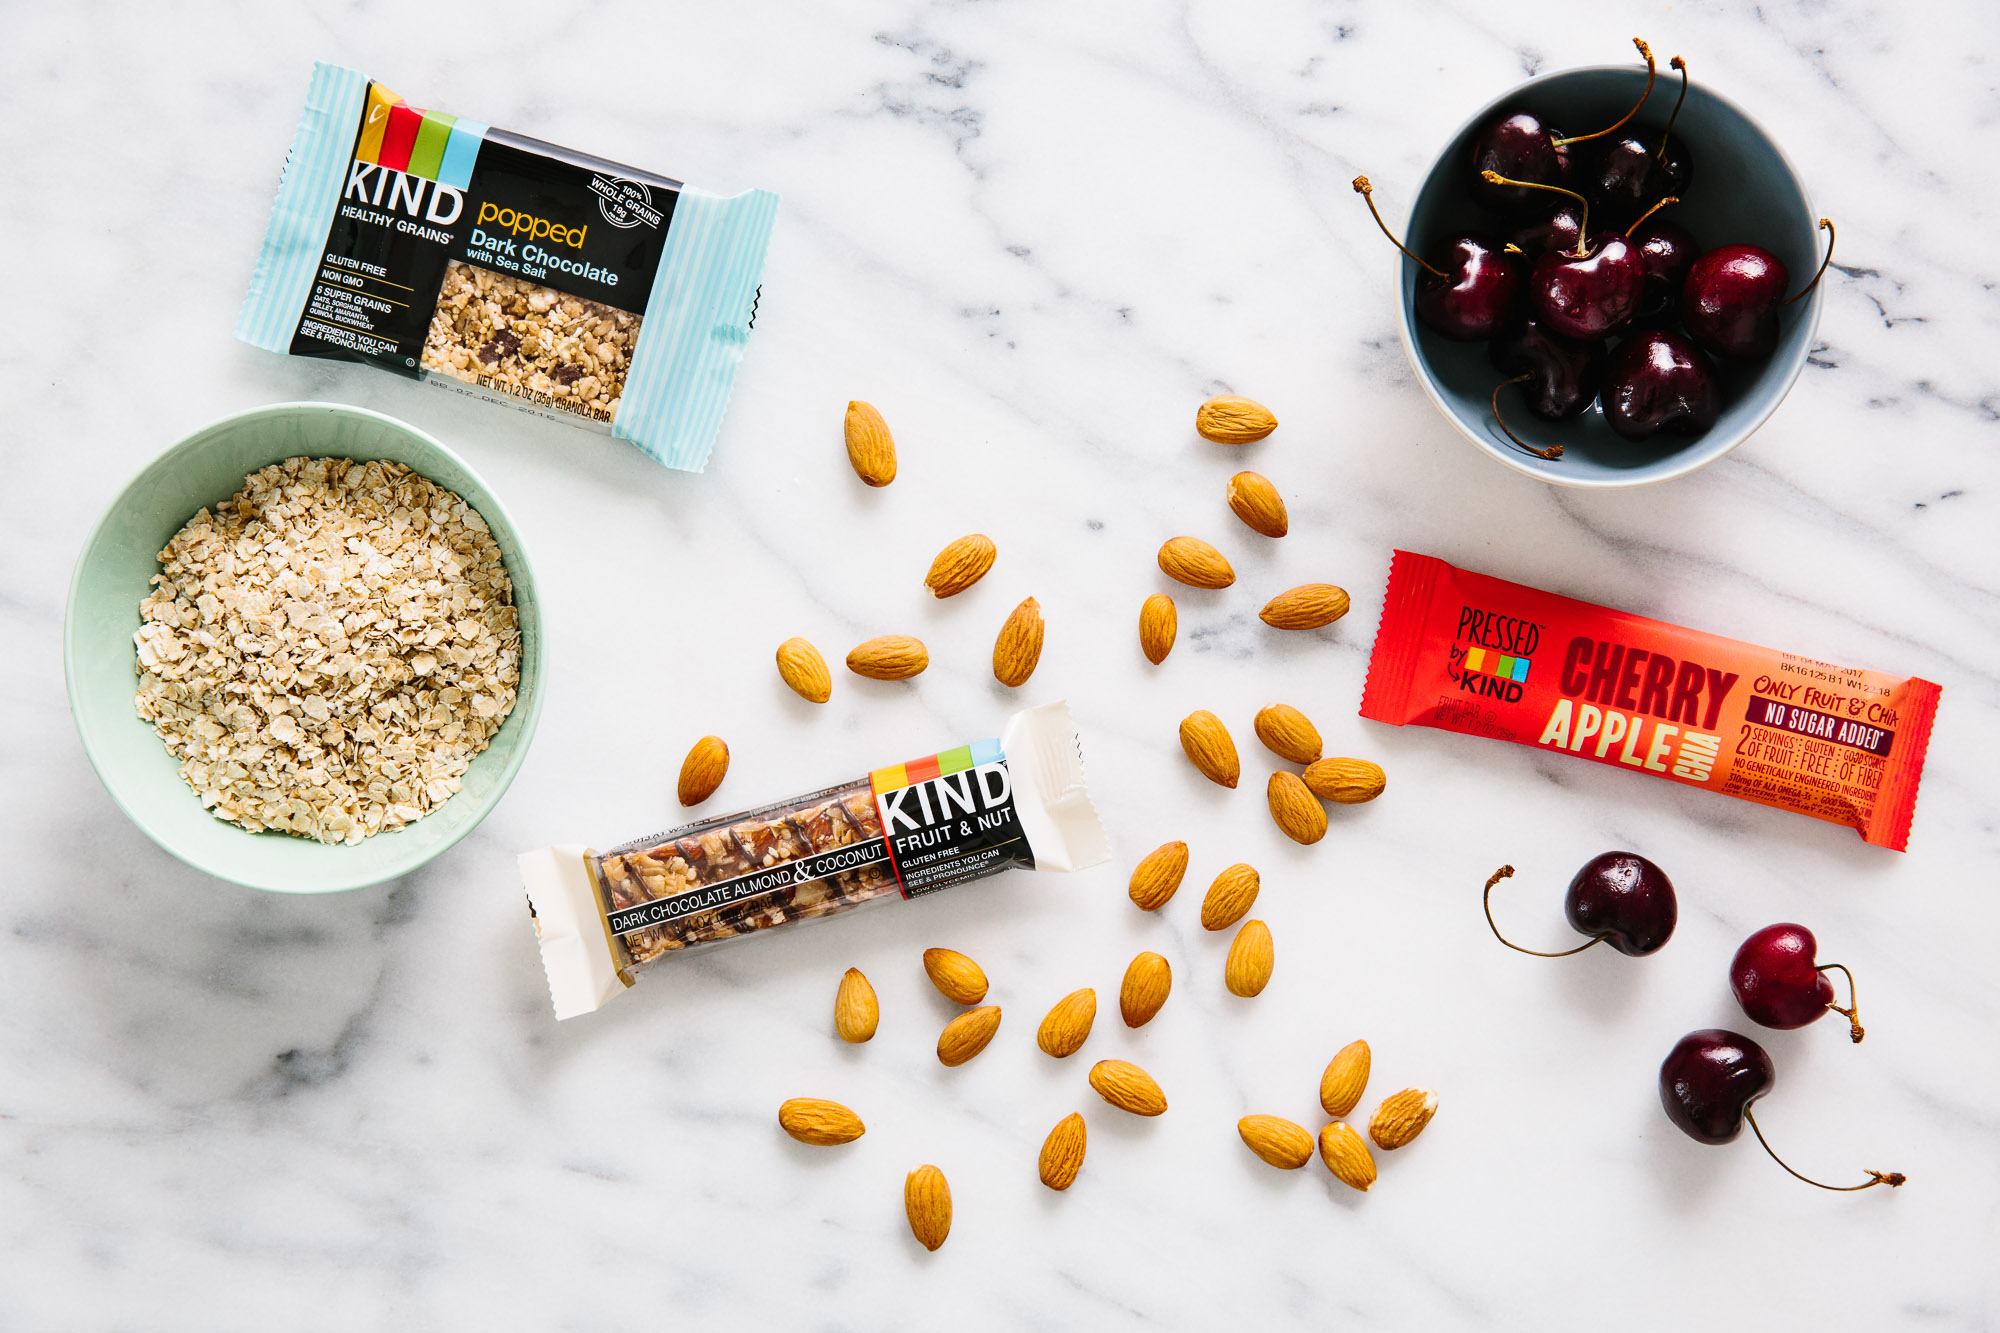 KIND Snacks Founder & CEO Daniel Lubetzky has pledged to raise $25 million to fund an organization that will promote public health and take aim at information promoted by special interest groups.